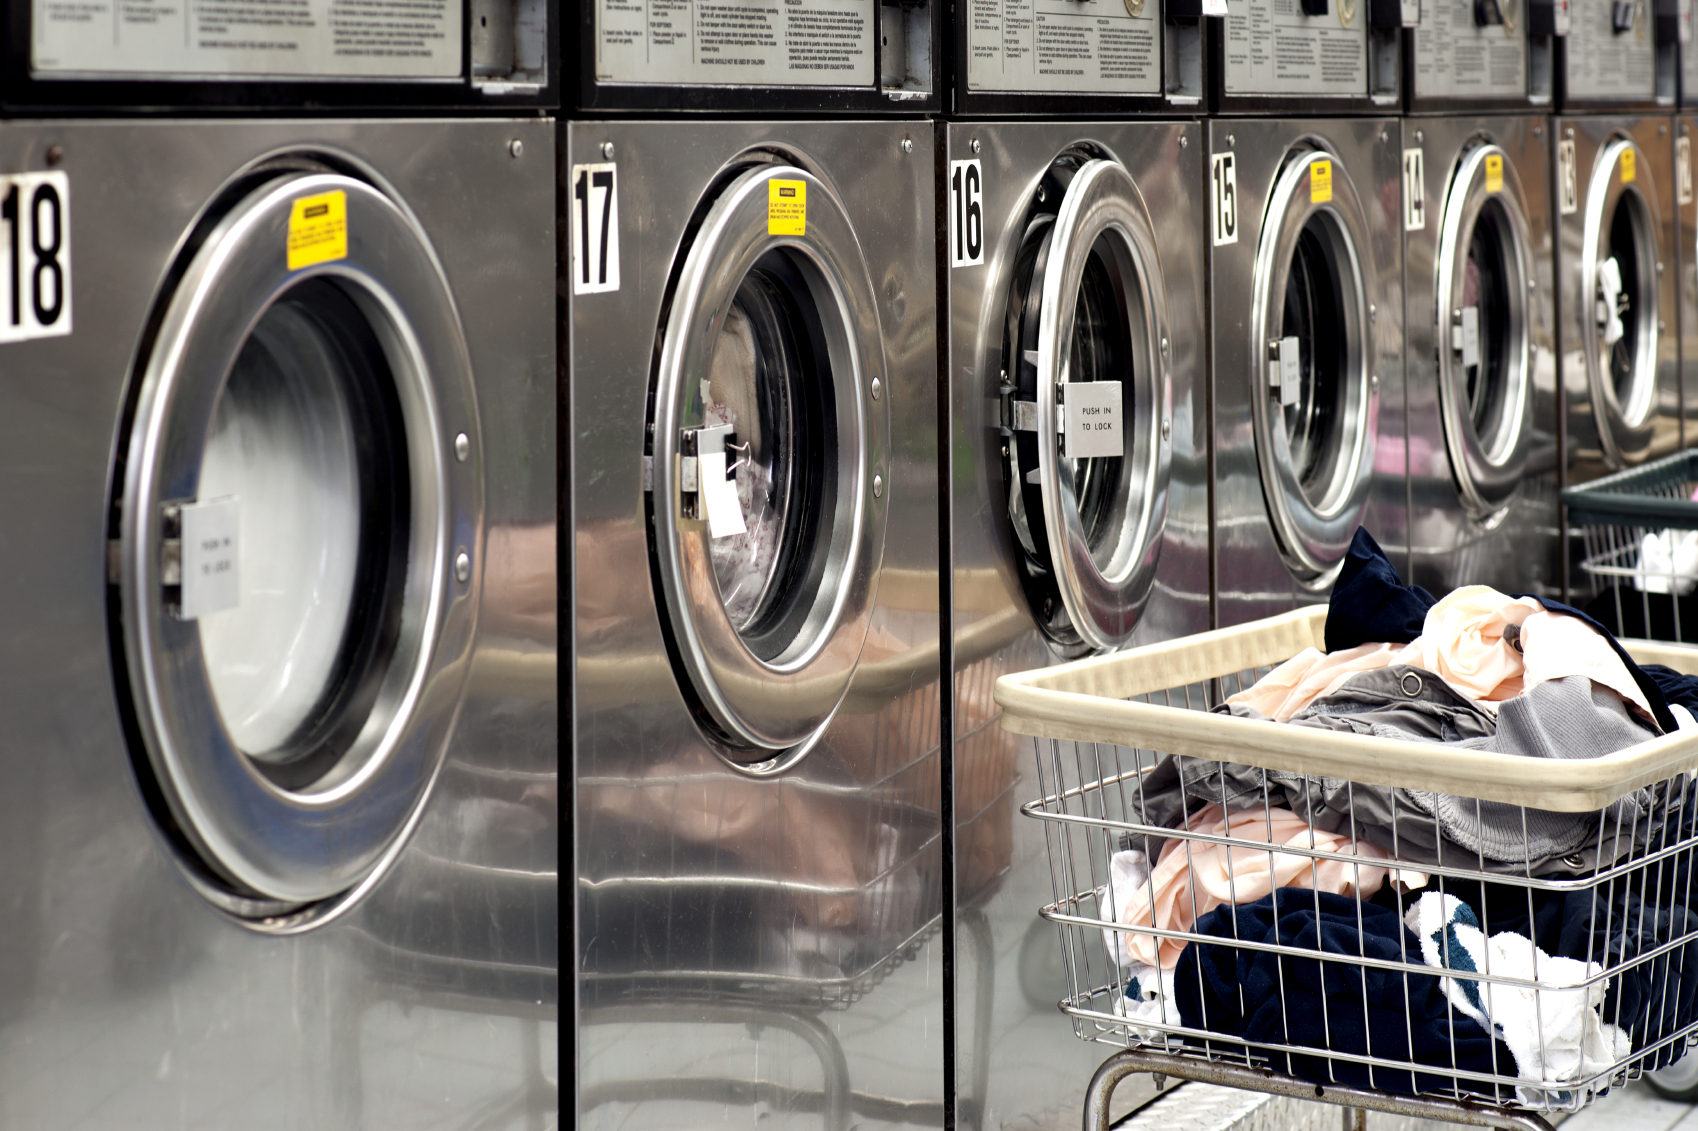 business sale affordable used clean laundry equipment